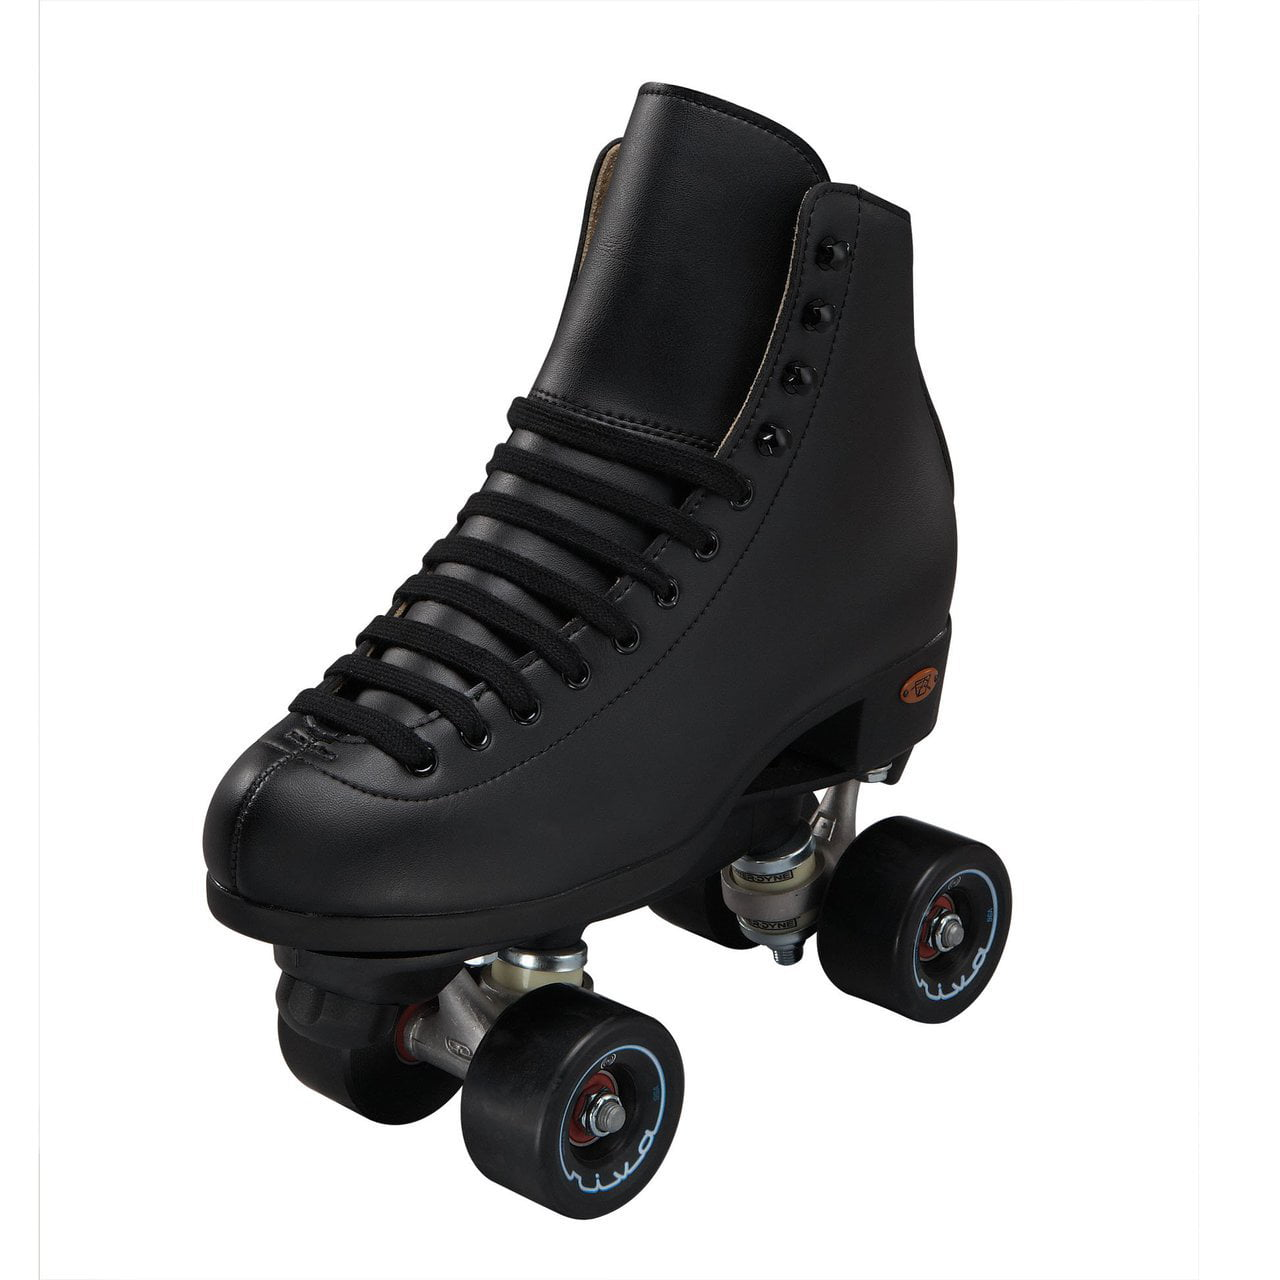 Roller skate shoes walmart - About This Item Riedell Quad Roller Skates